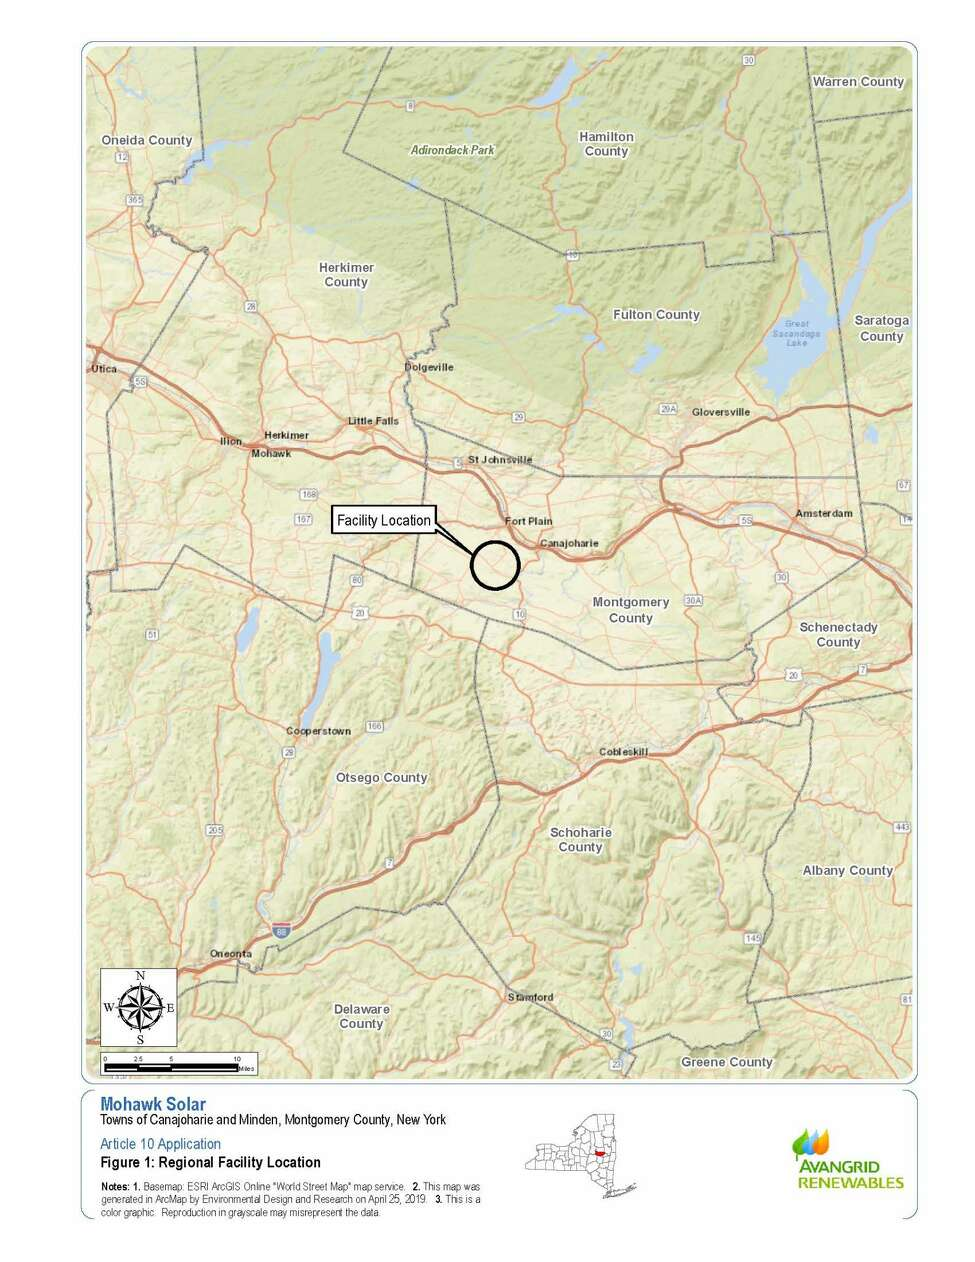 Location of proposed solar farm in the Canajoharie area, among the documents provided to the state Department of Public Service by Avangrid Renewables.